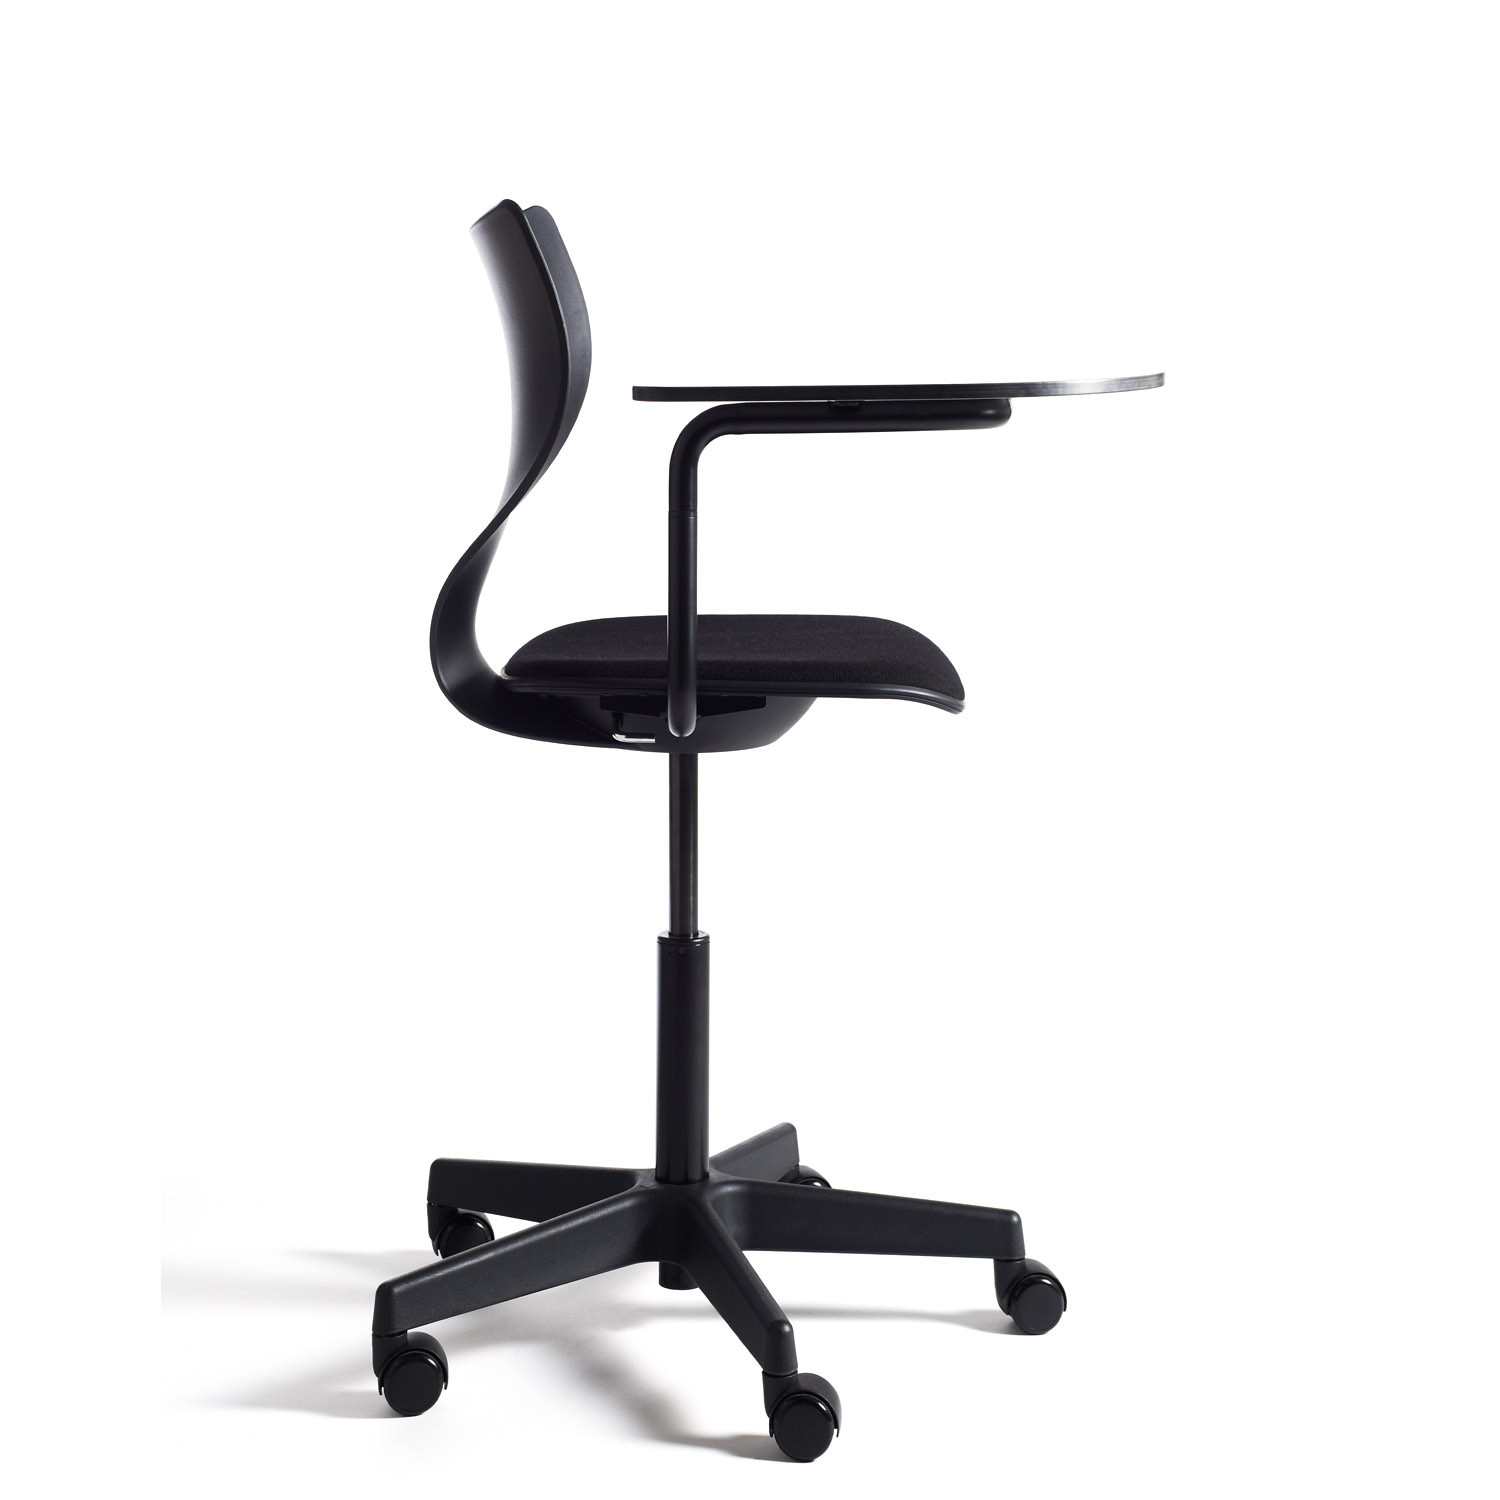 Cobra Swivel Chair with Tablet